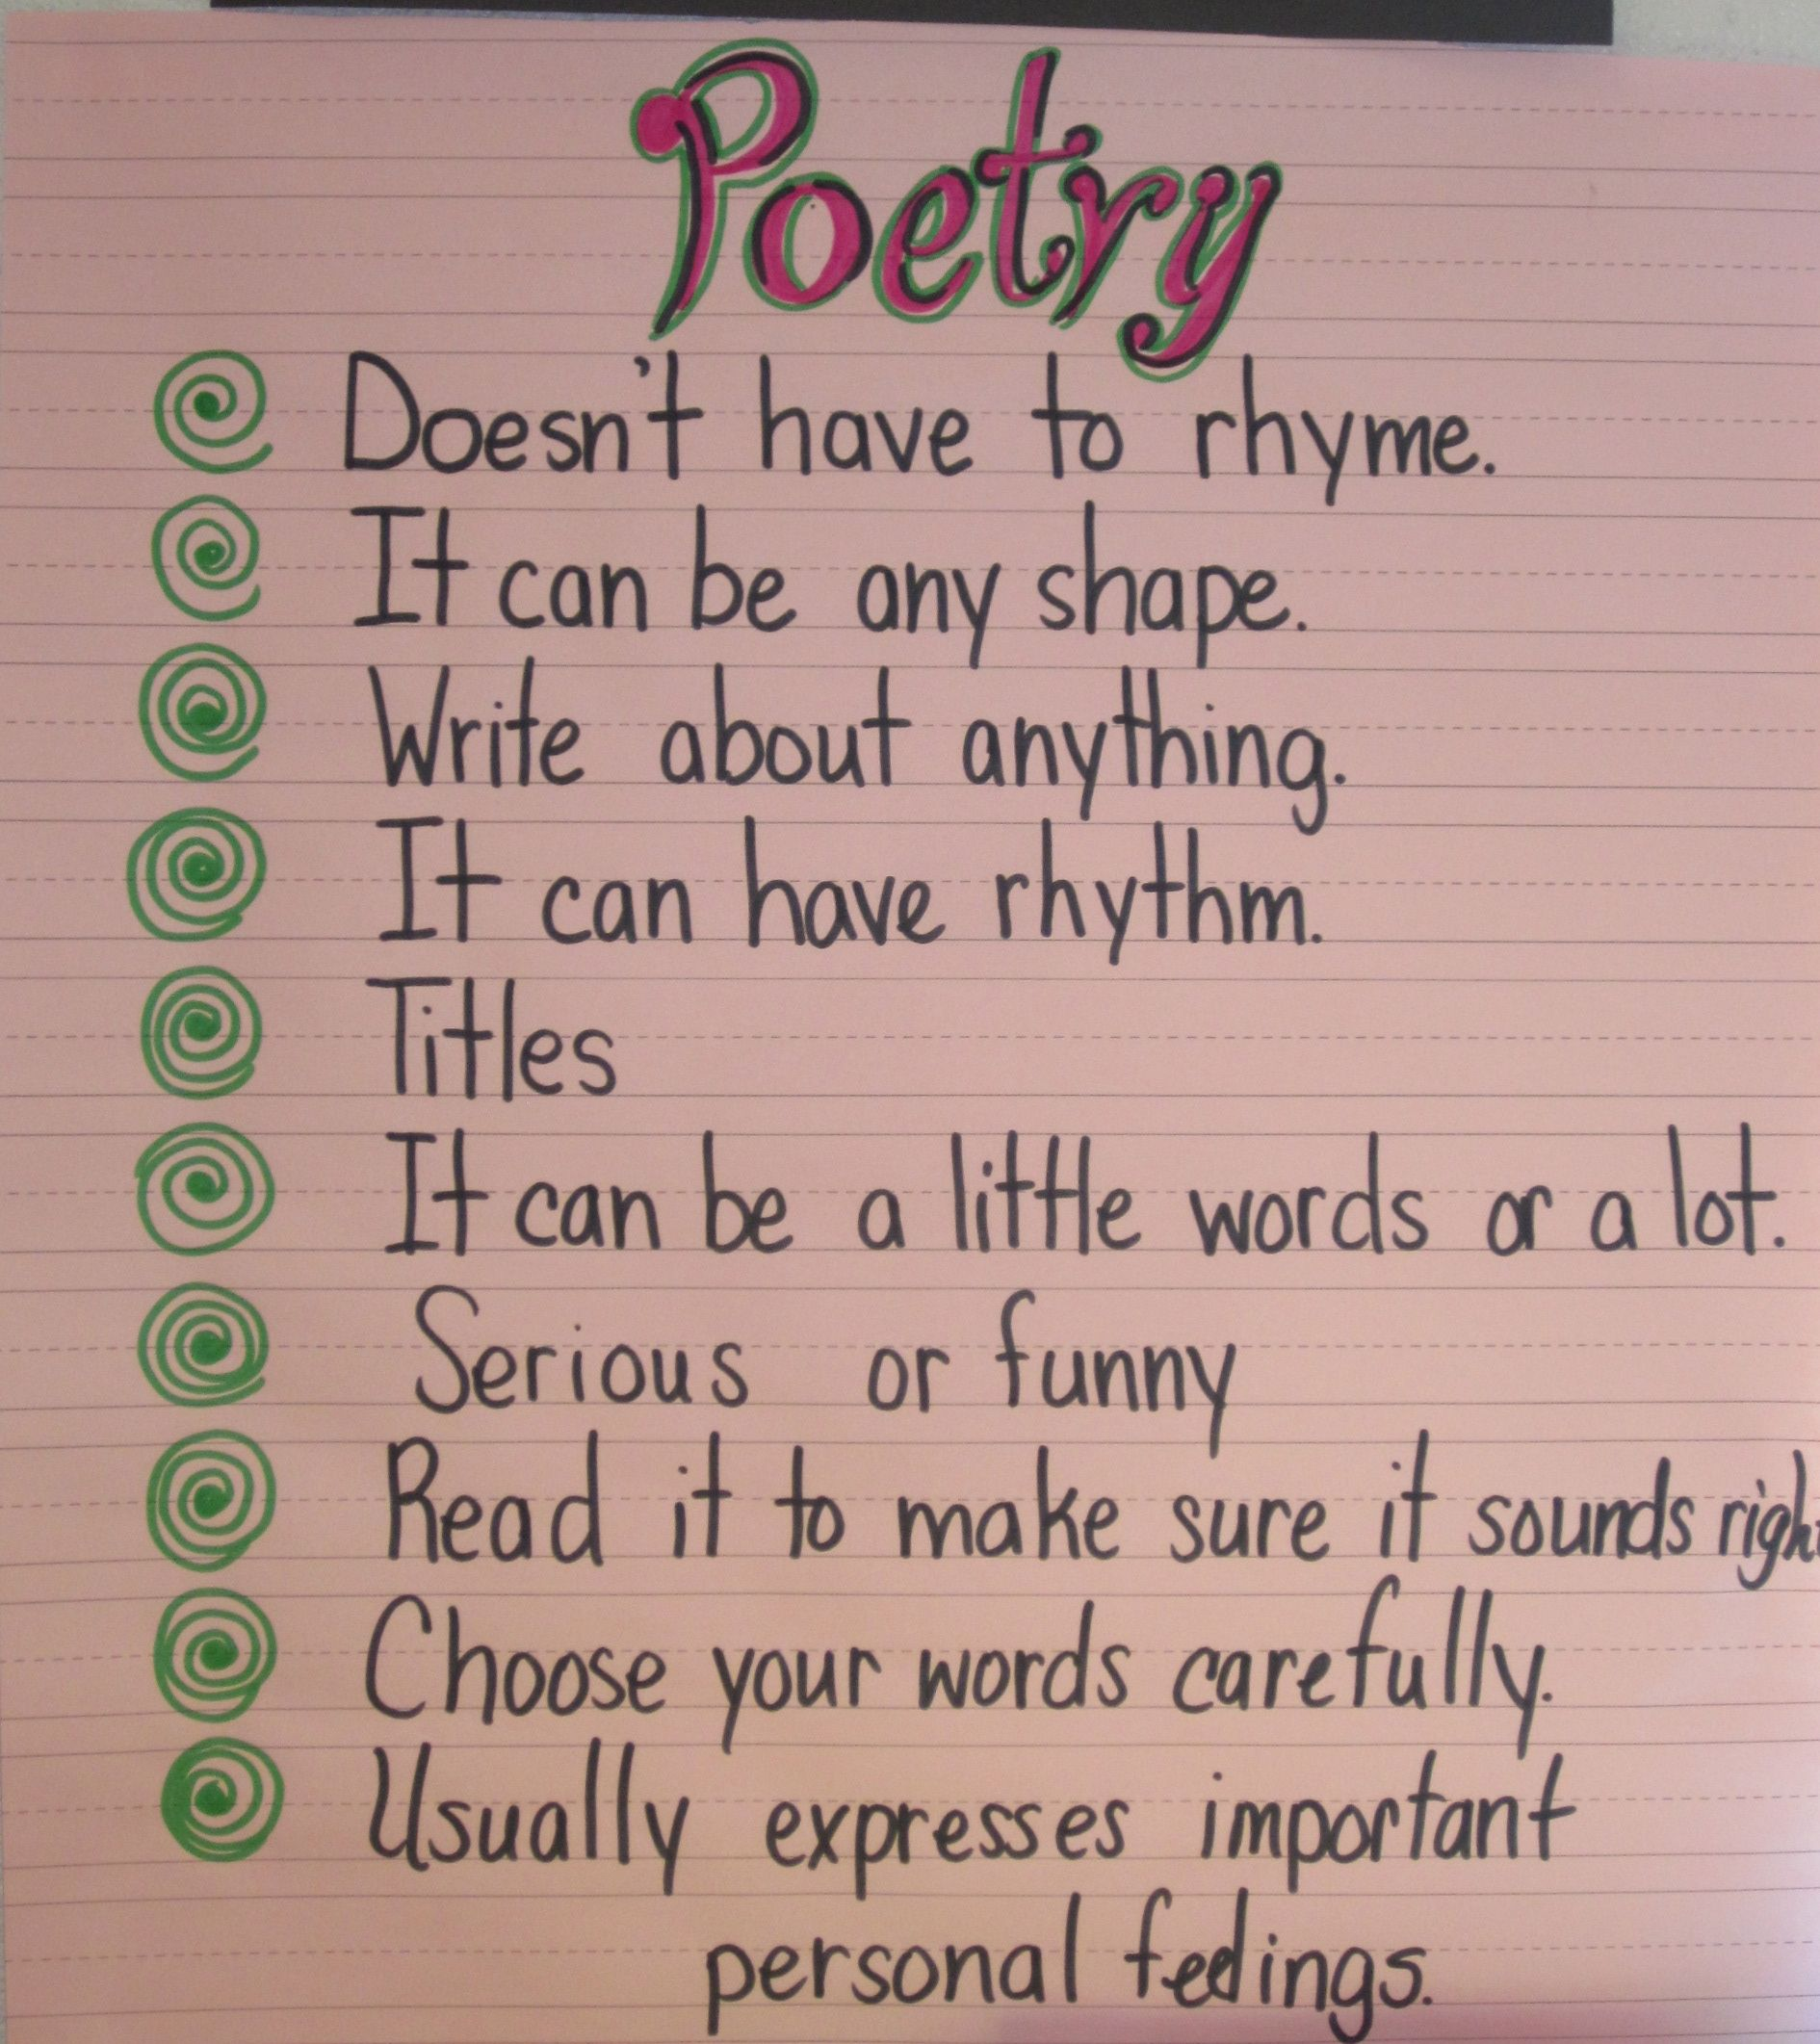 Poetry Form - The Rondeau